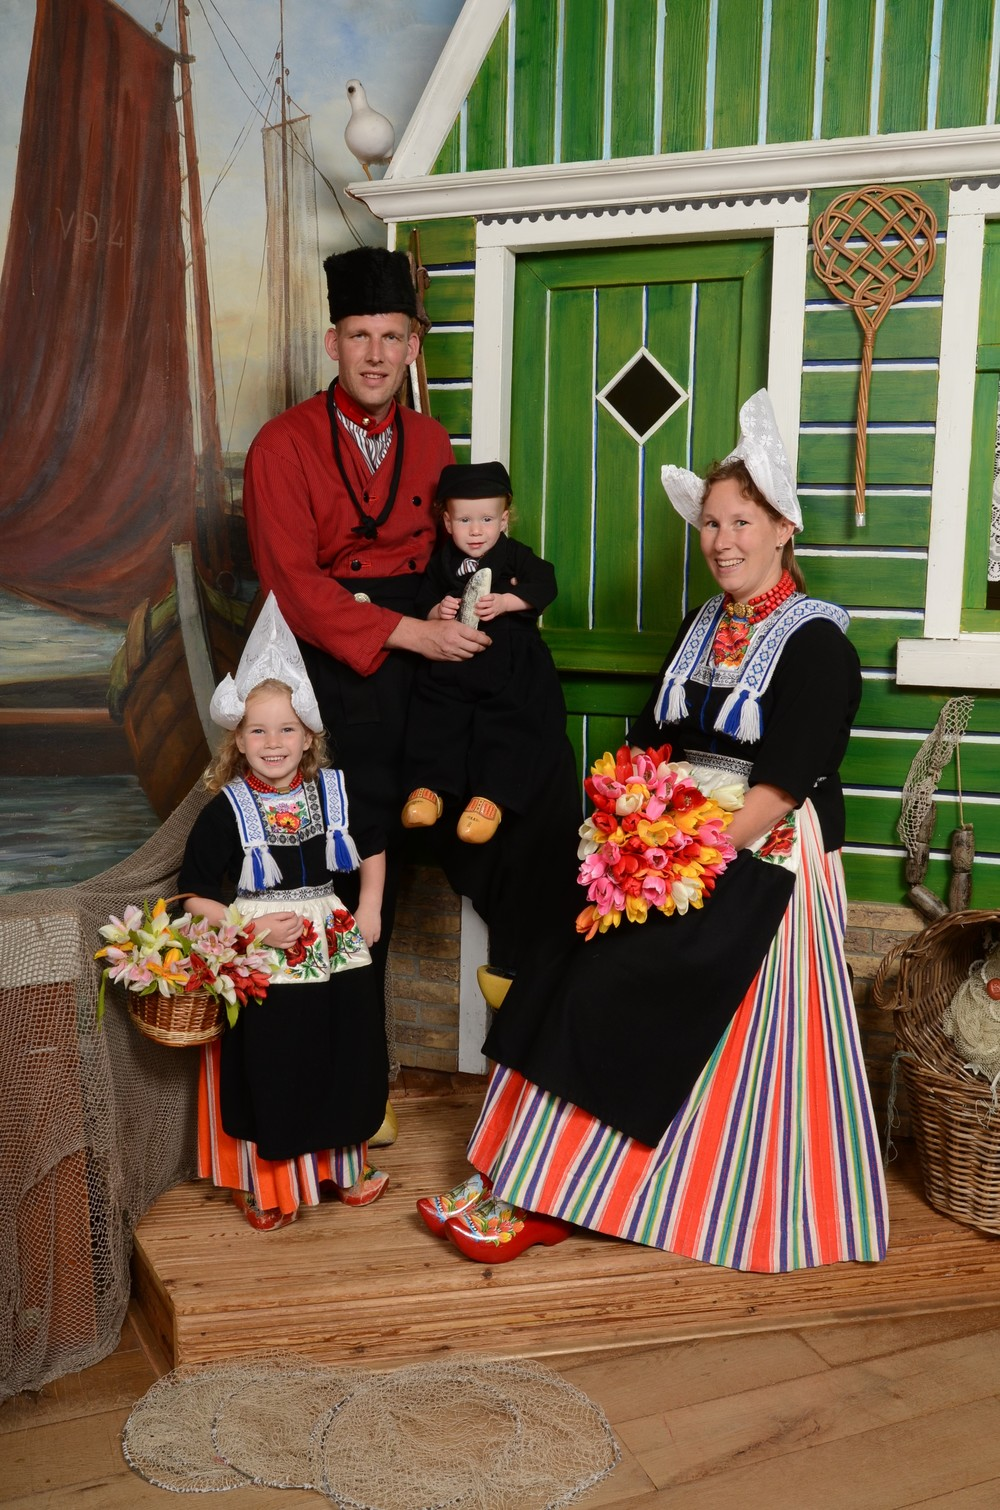 Family in Volendam costume